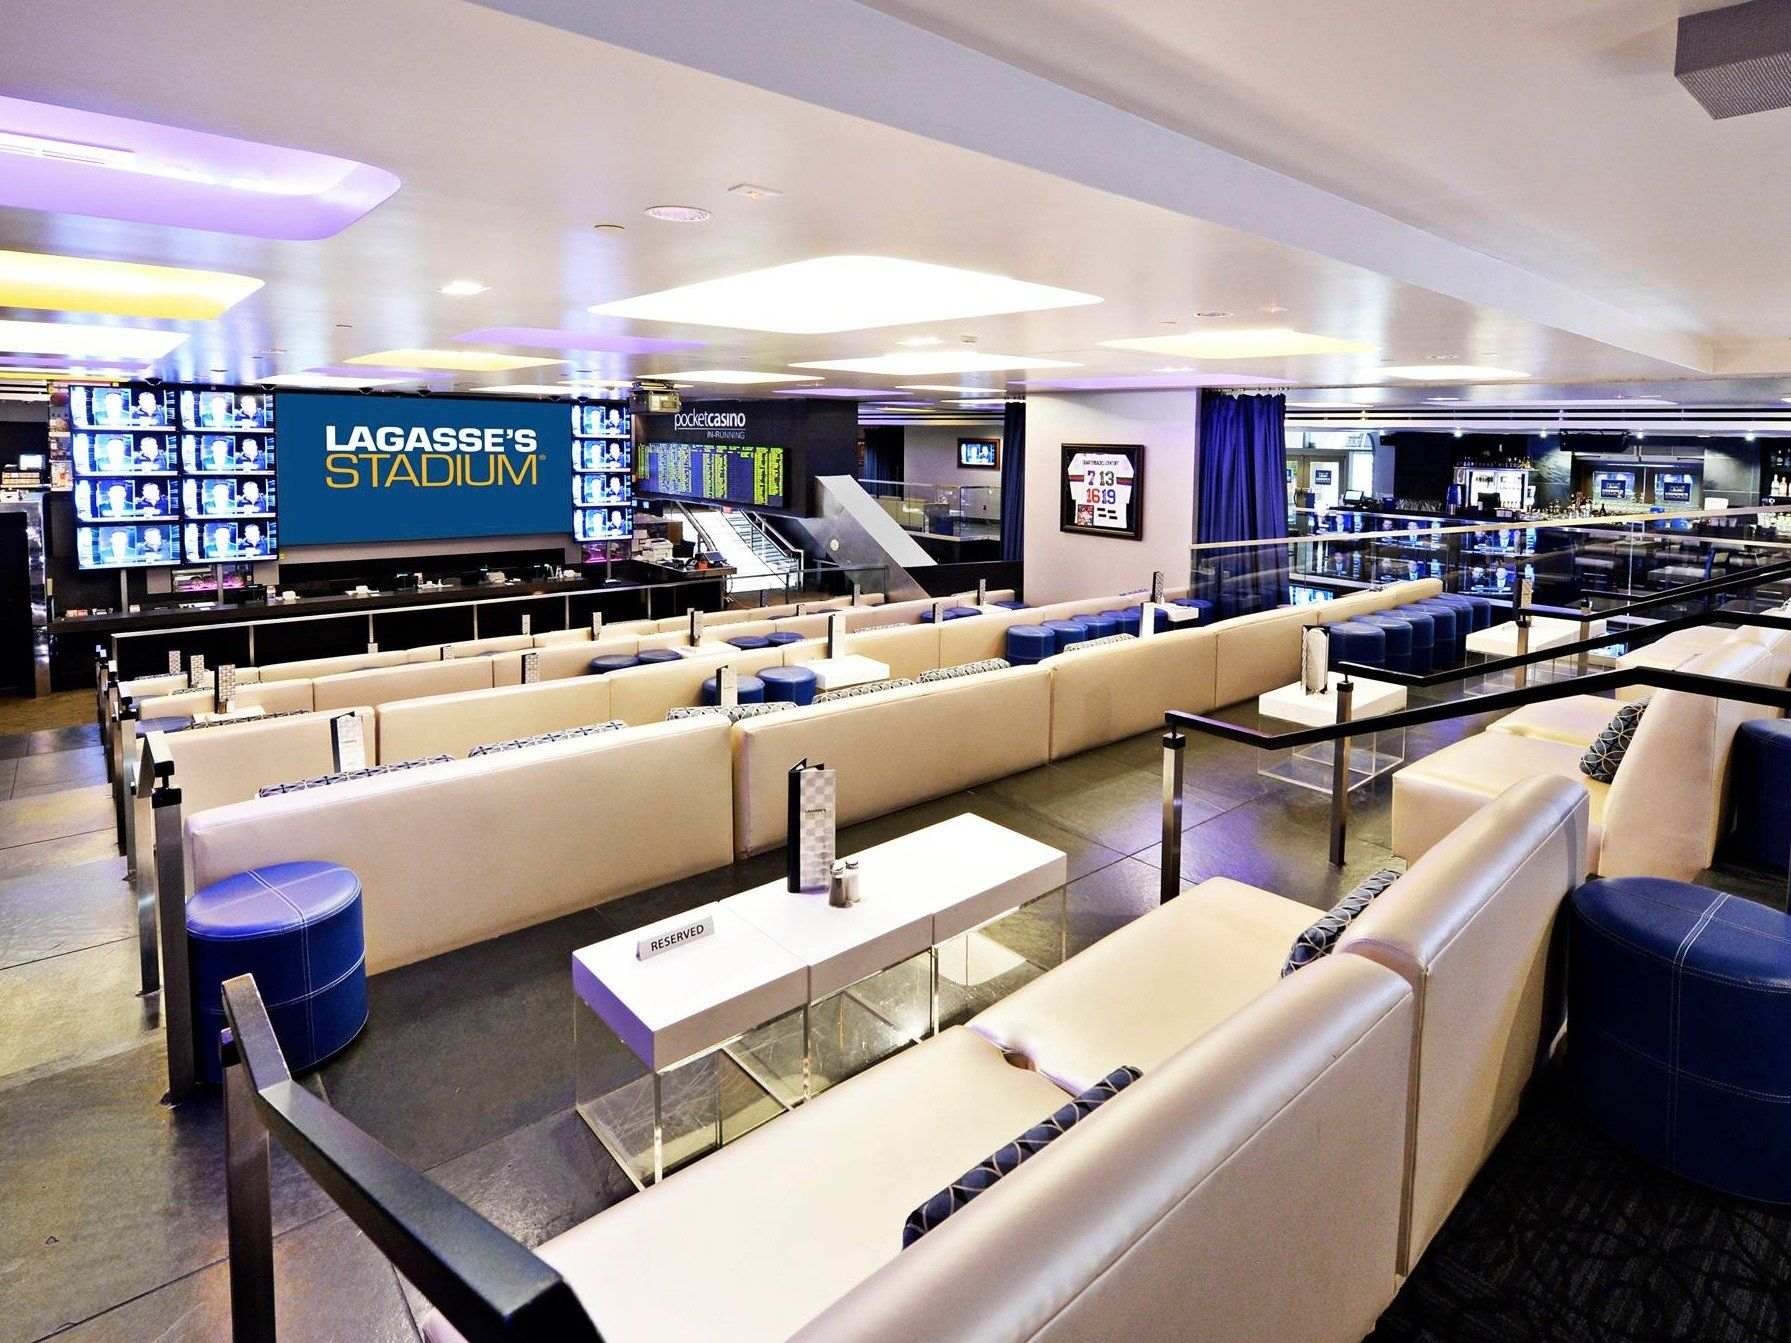 20 of the most upscale sports bars in the US   Sports bar ...